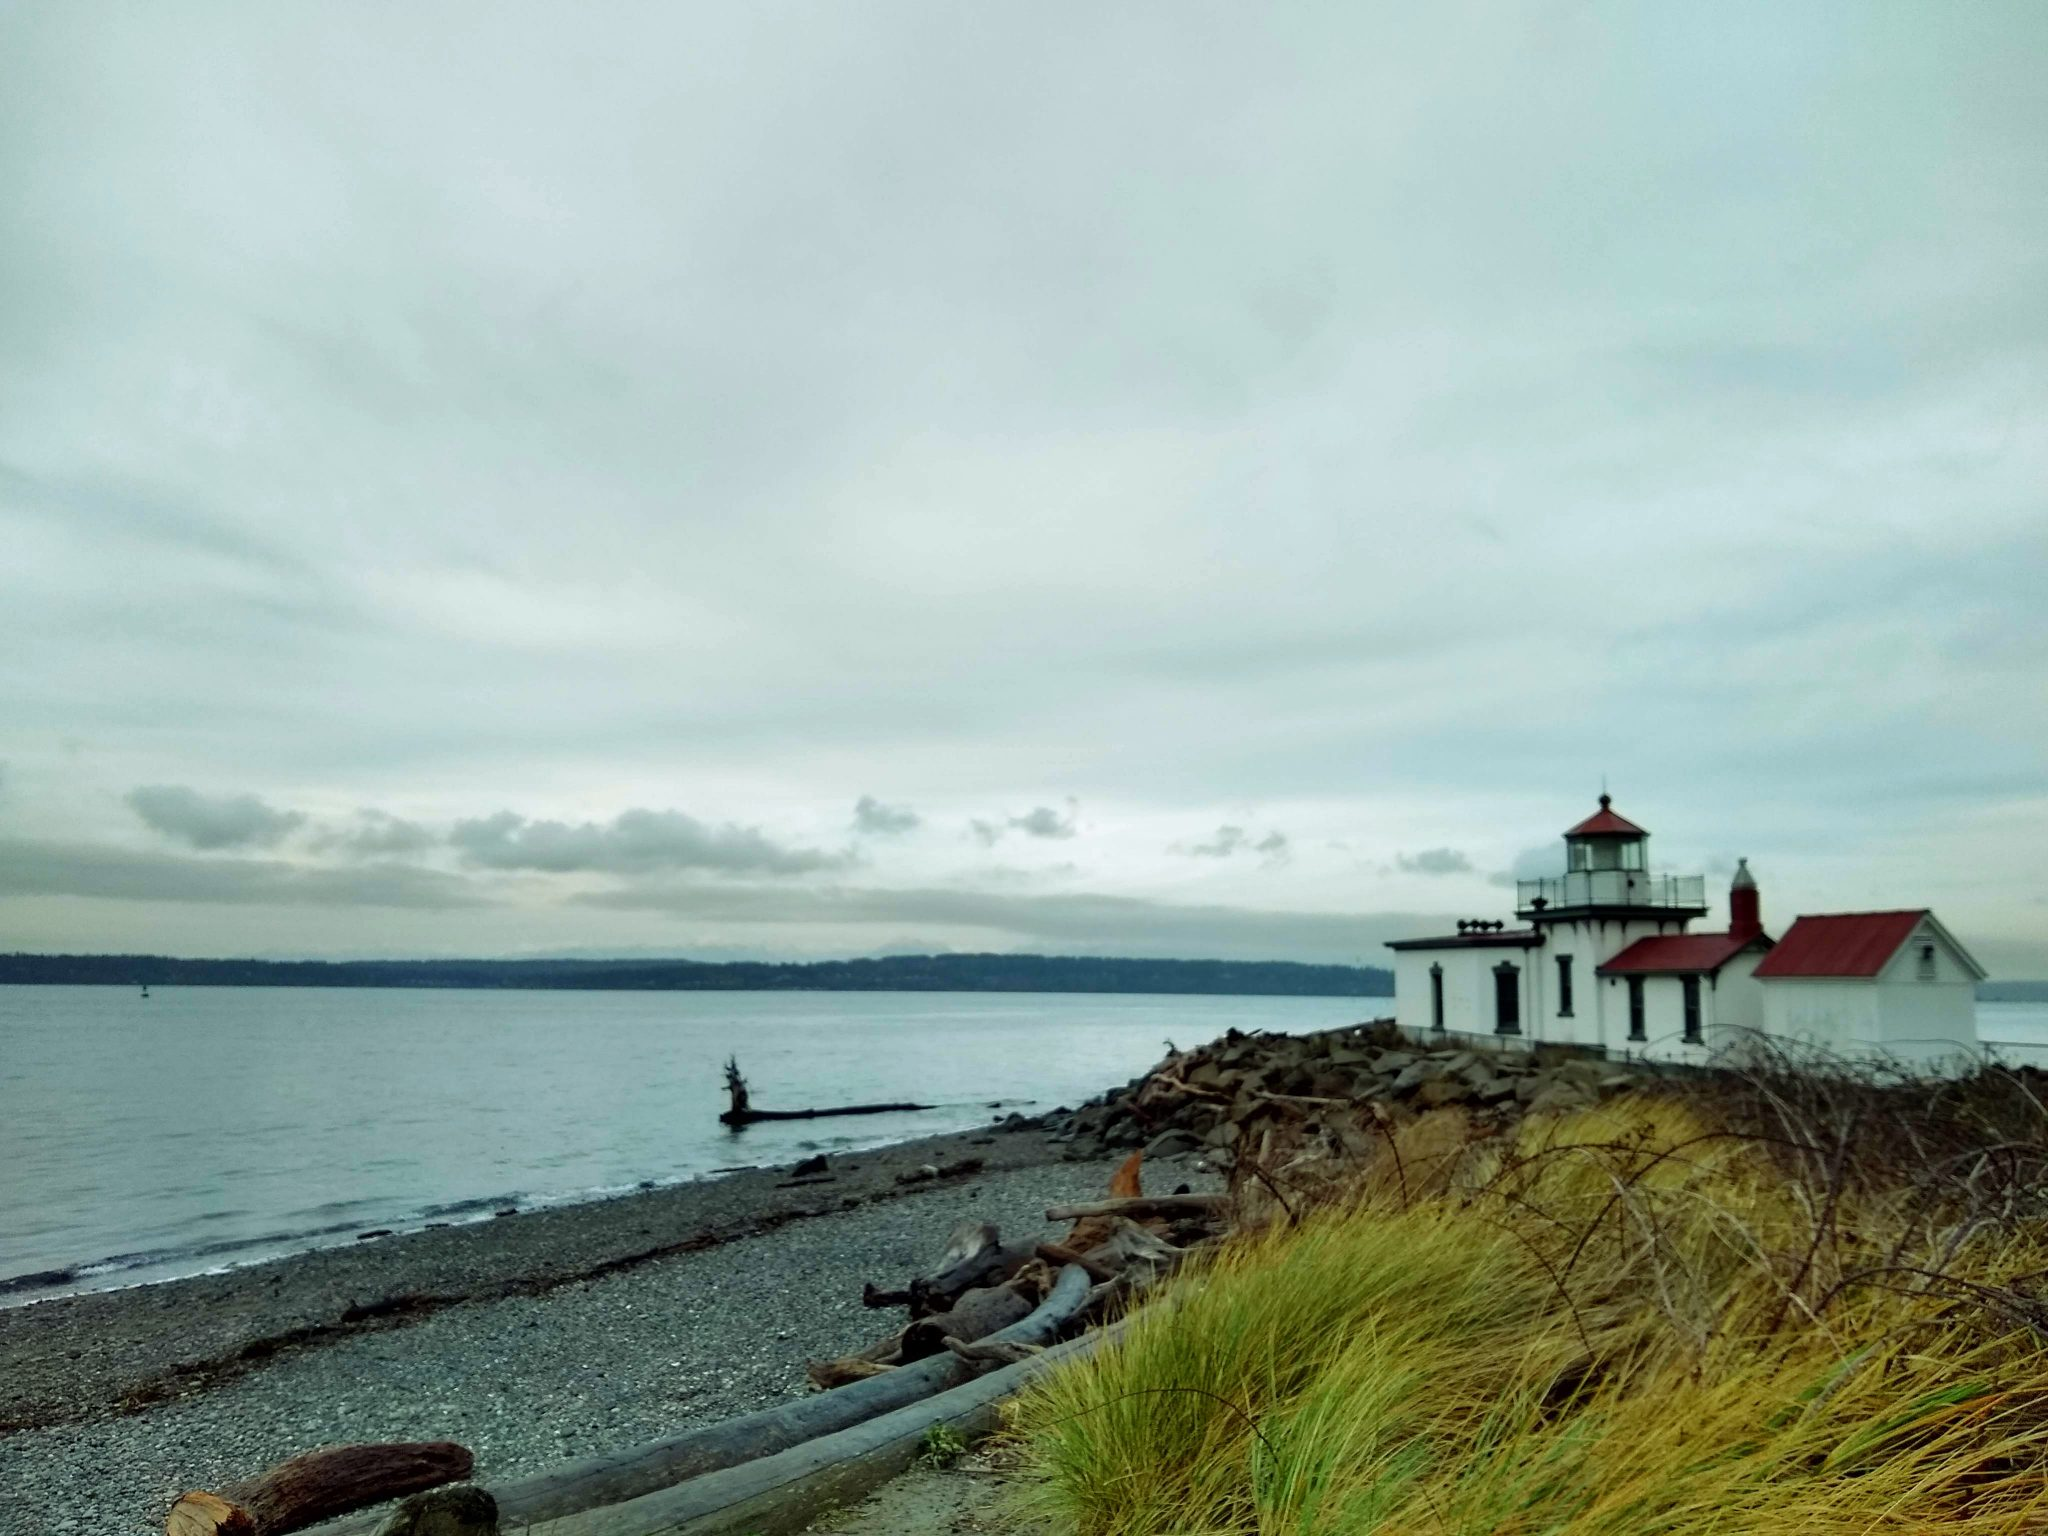 Outdoor activities in Seattle include beaches such as this one by the Westpoint lighthouse. The lighthouse is on a gravel beach with driftwood and rocks. The water is calm and forested hills are seen across the water. It's an overcast day